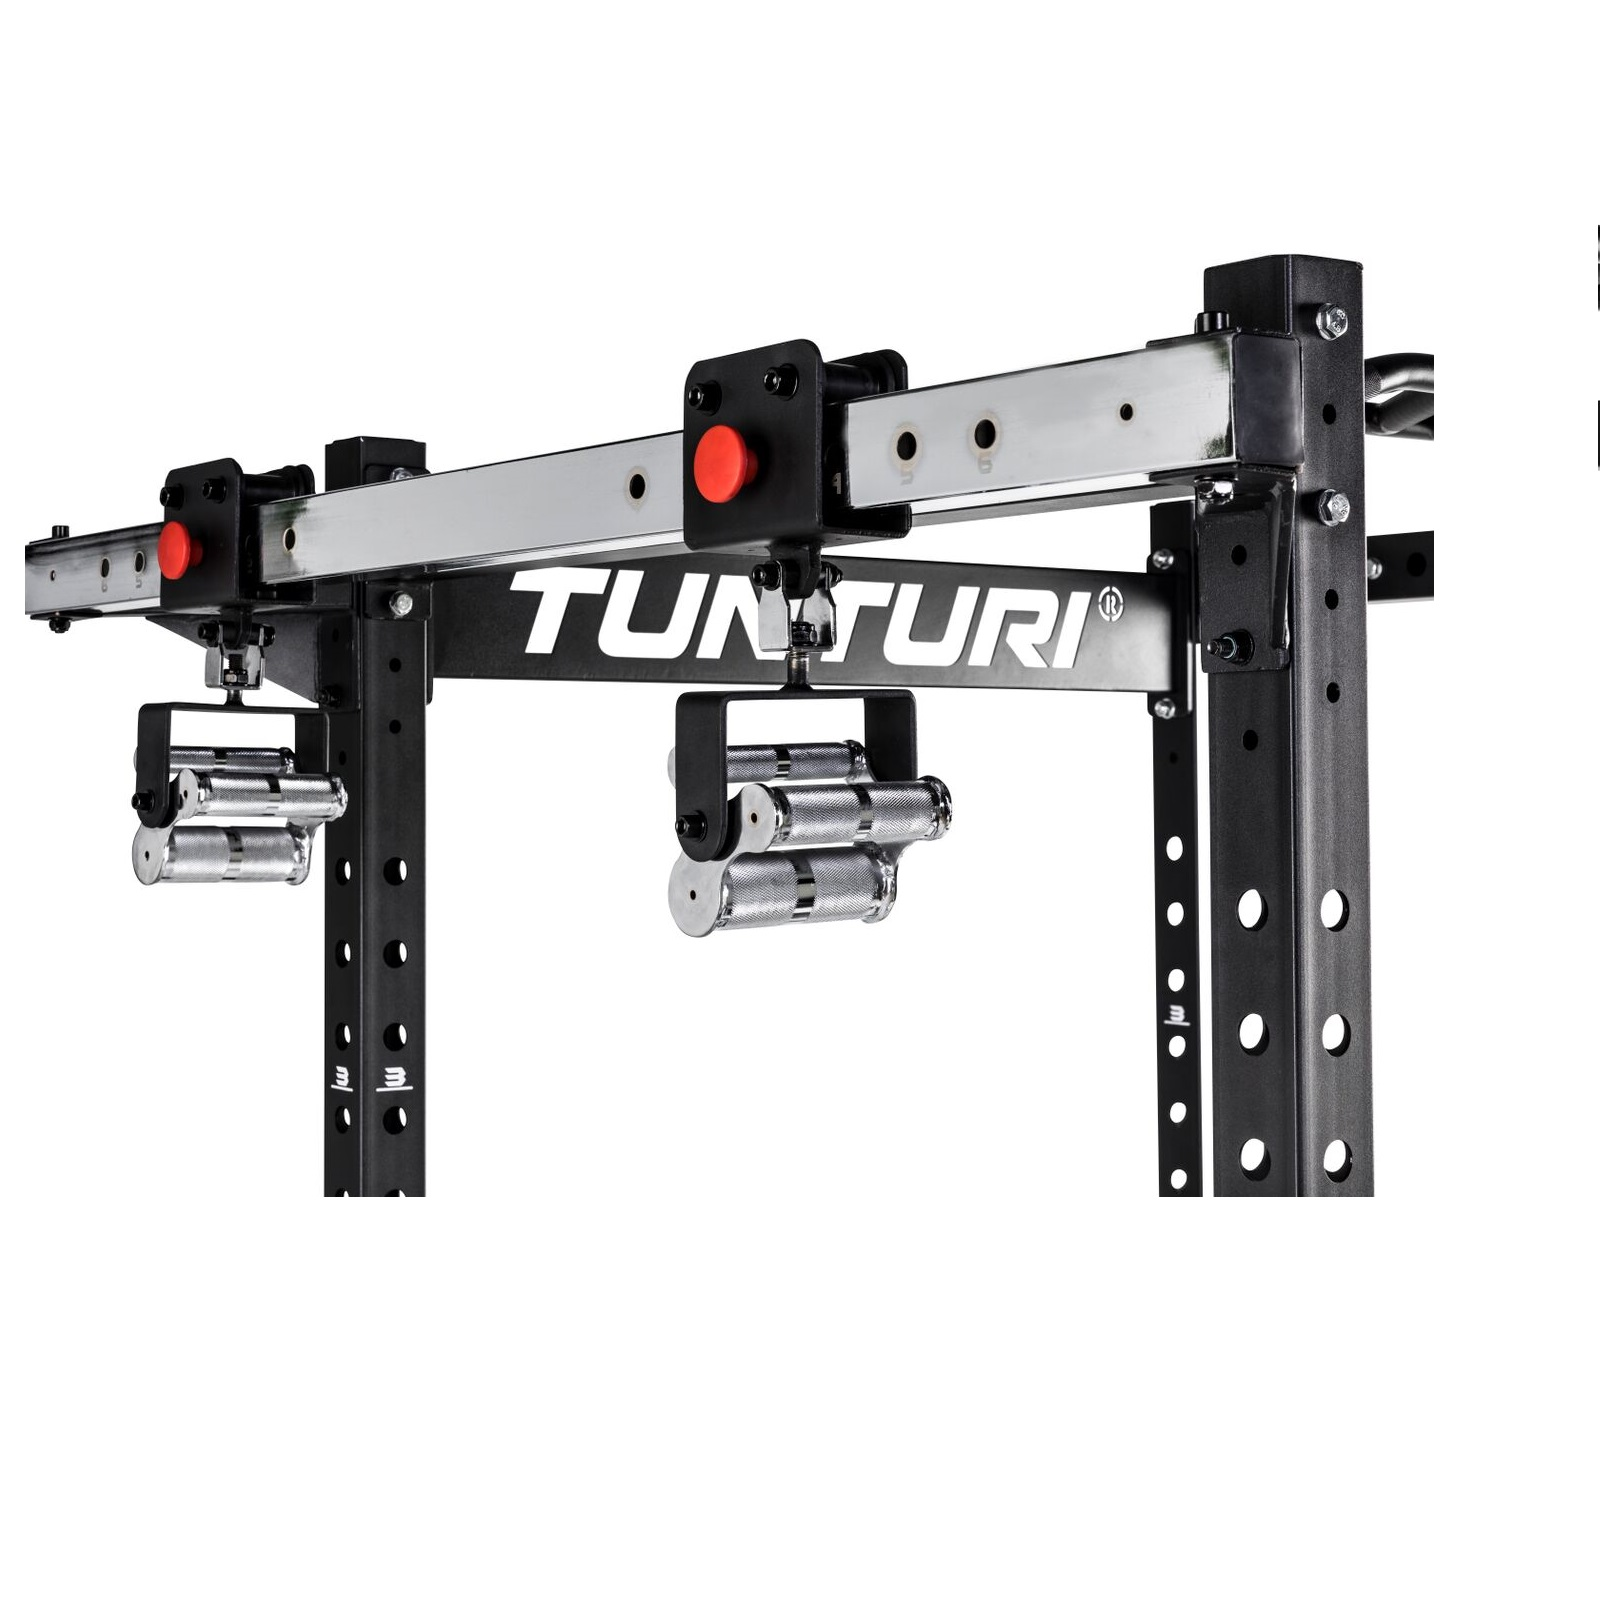 Tunturi RC20 Multigrip Pullup Sliders